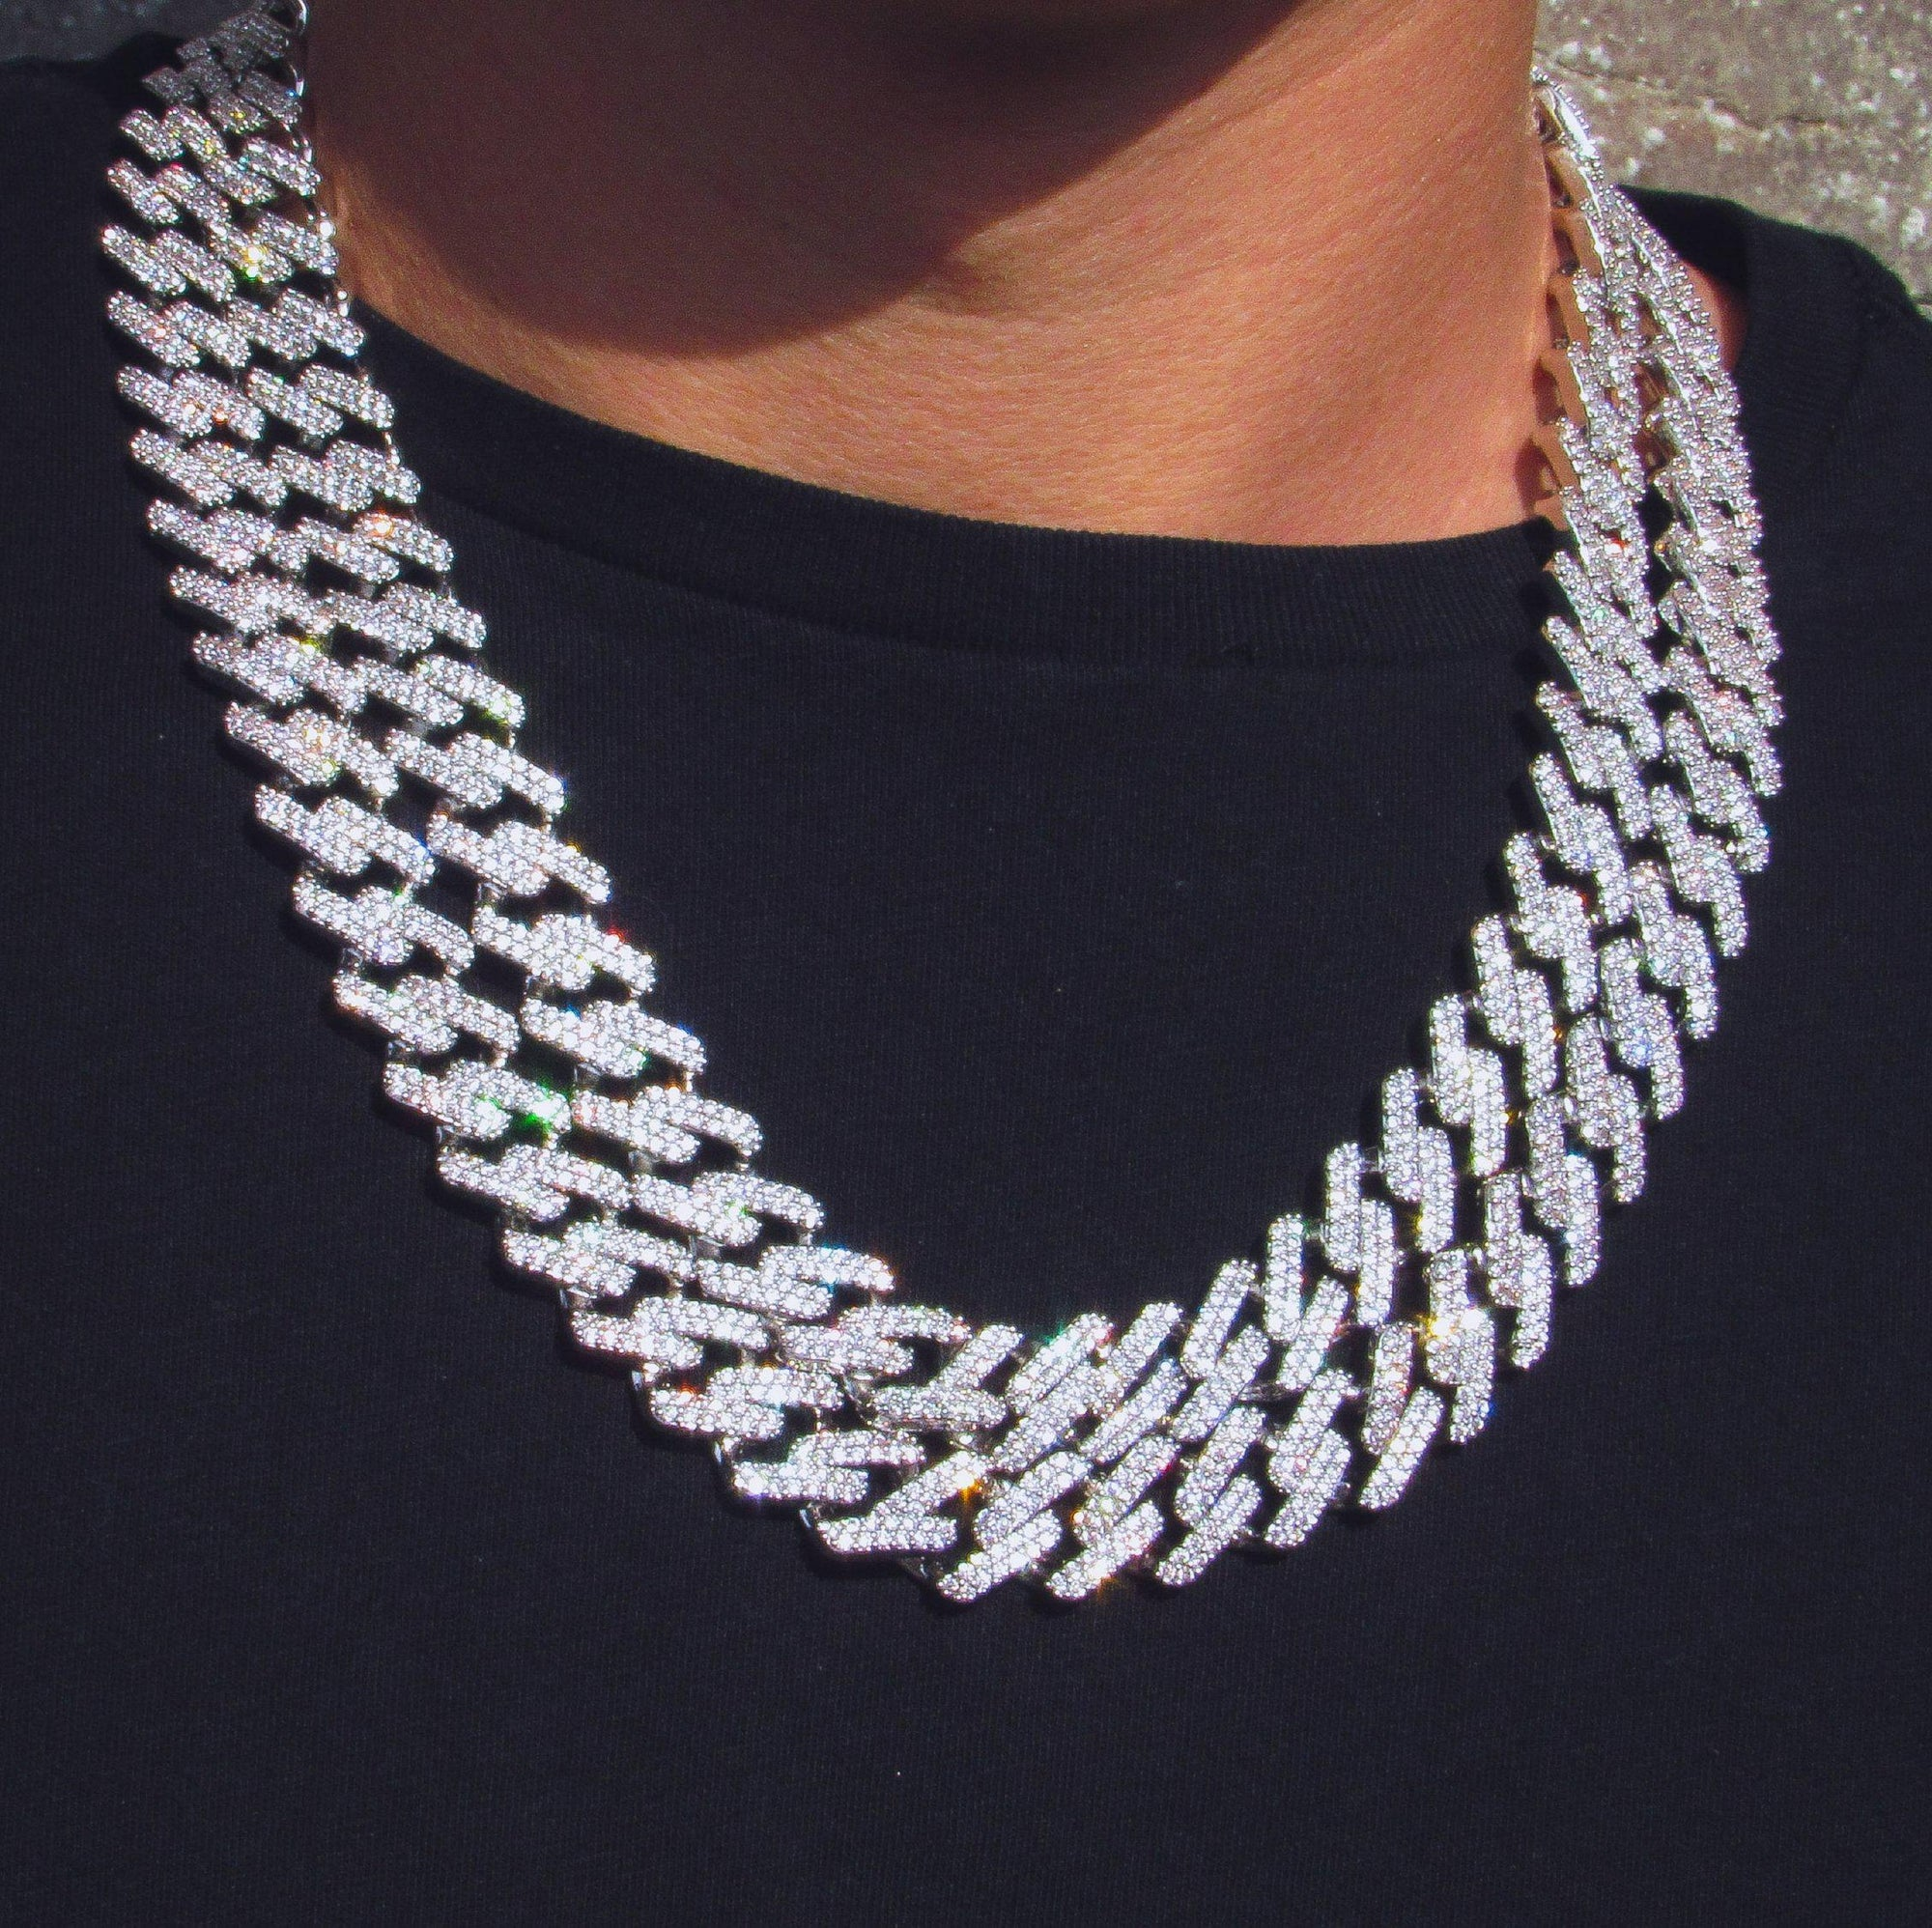 14mm Prong Set Miami Cuban Link Chain in White Gold - IcedGold